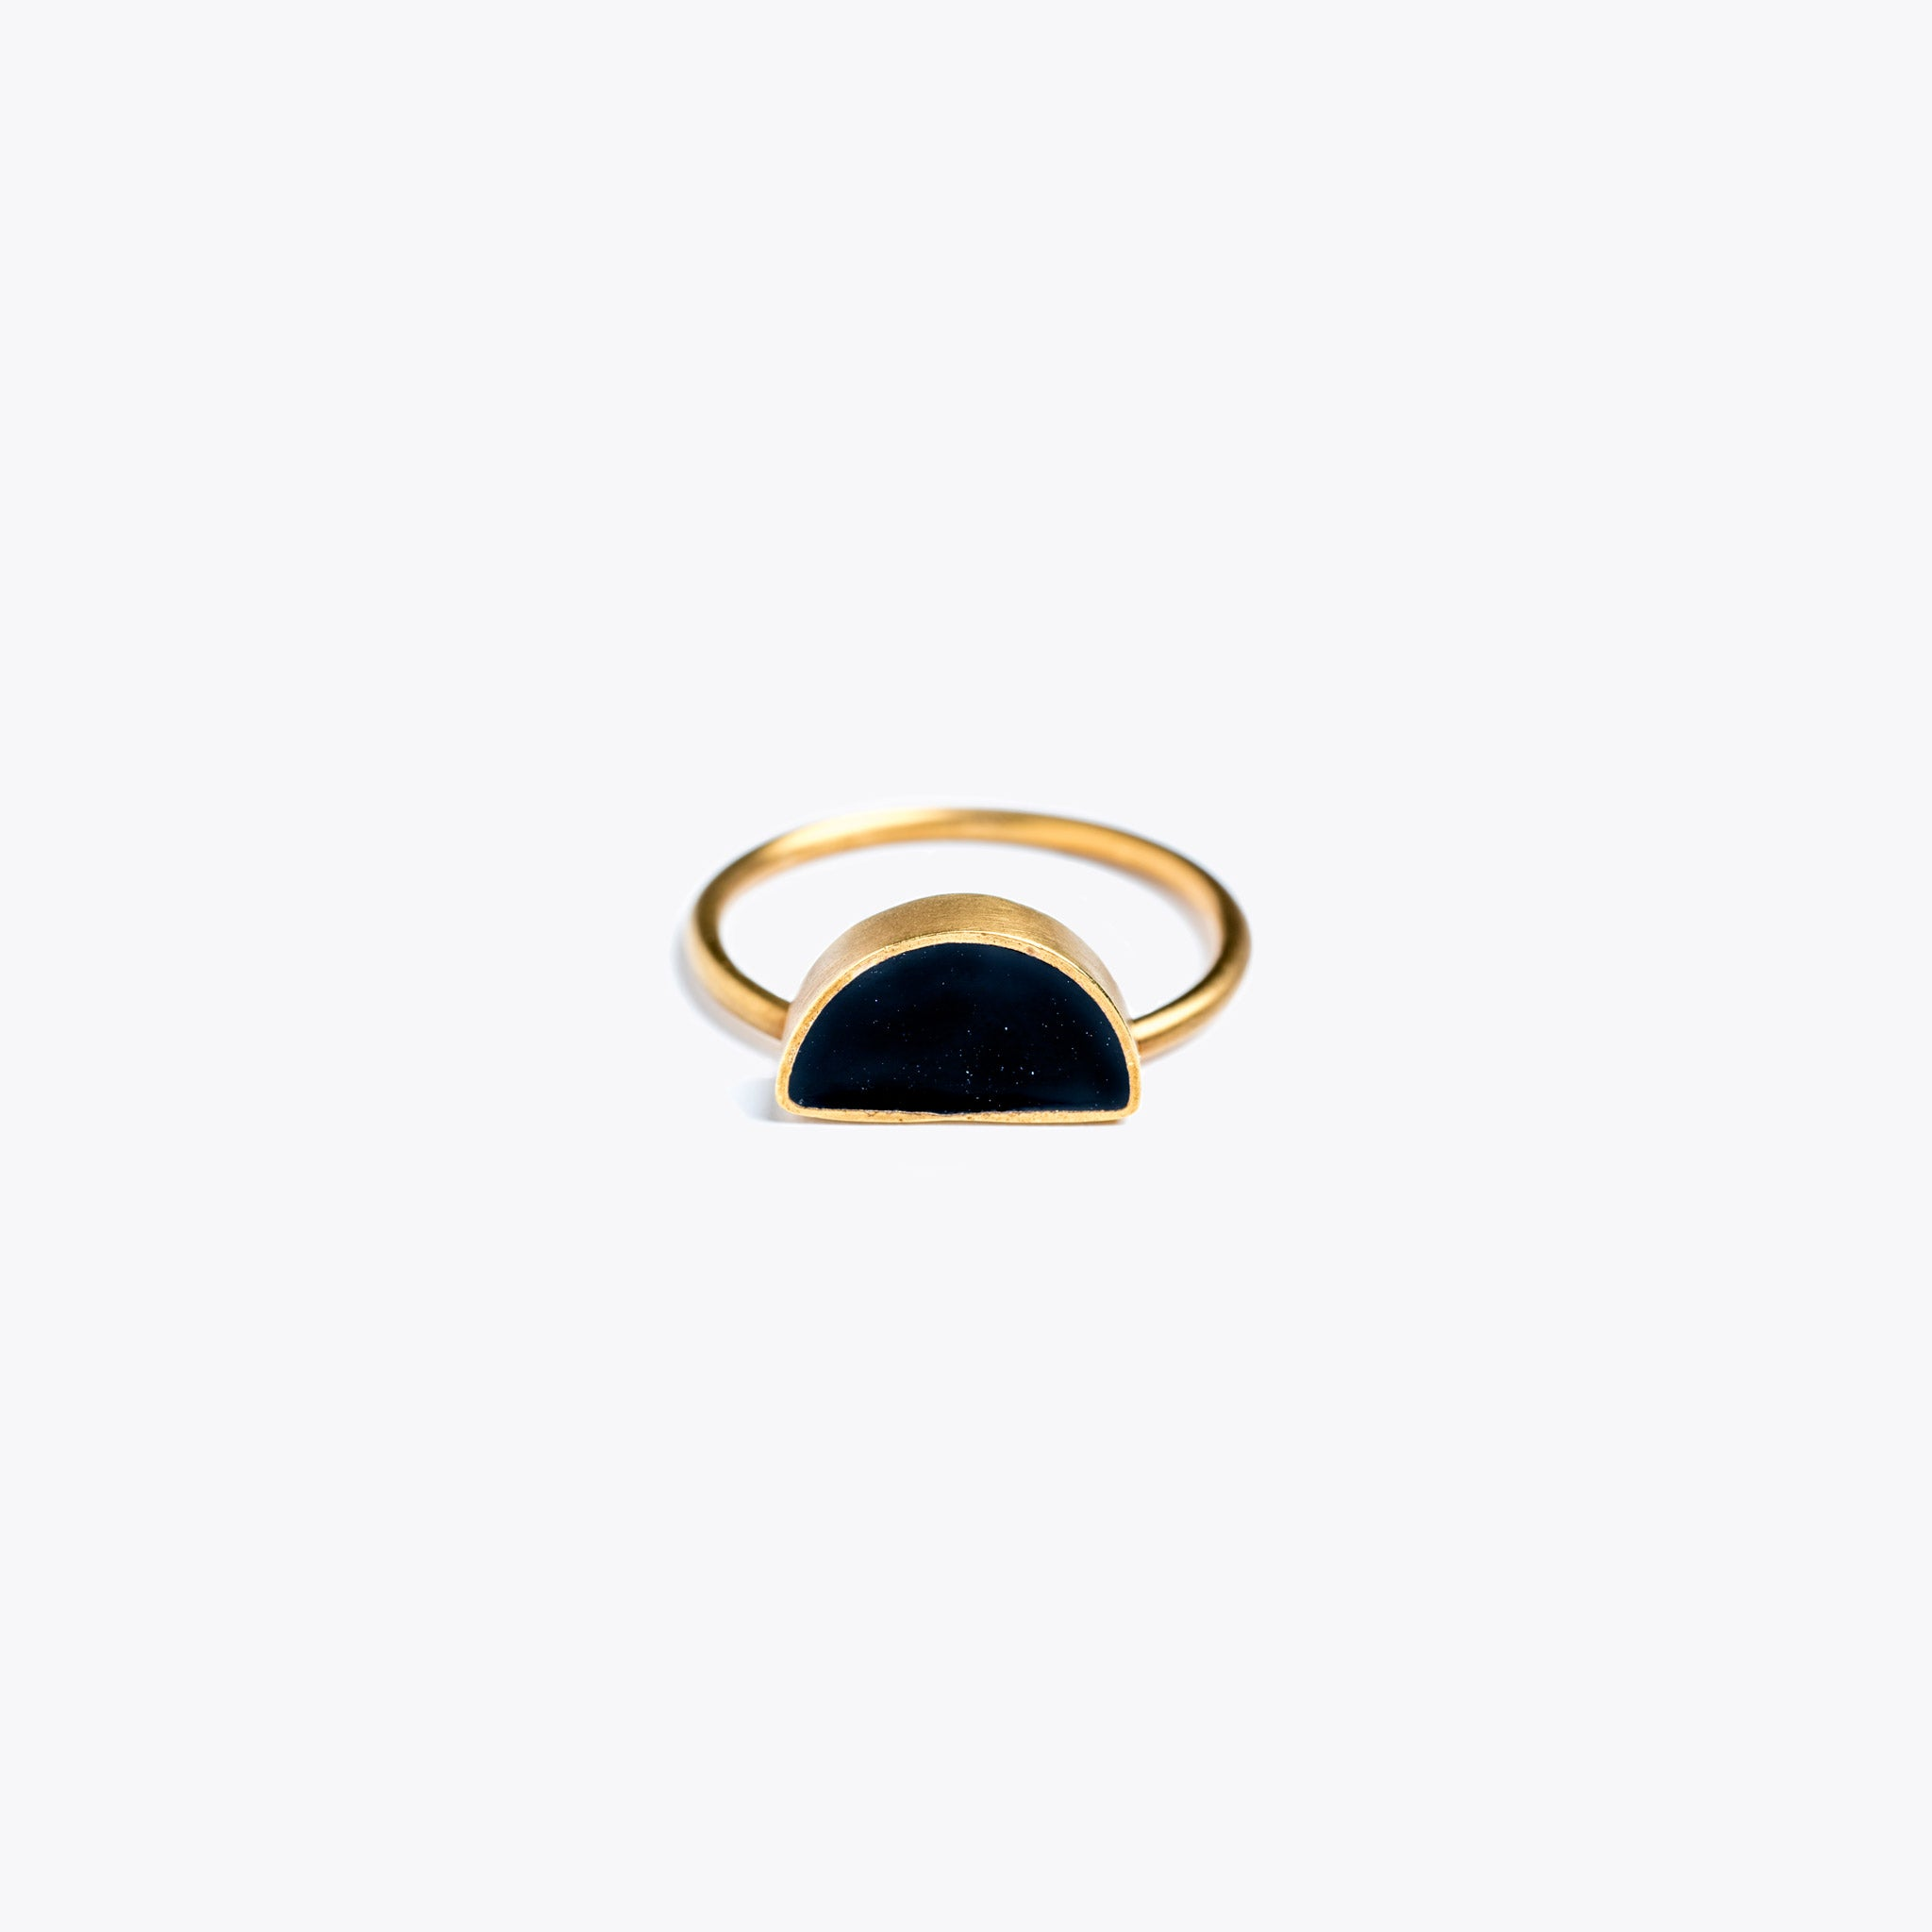 Wanderlust Life Ethically Handmade jewellery made in the UK. Minimalist gold and fine cord jewellery. sunburst noir enamel ring, black